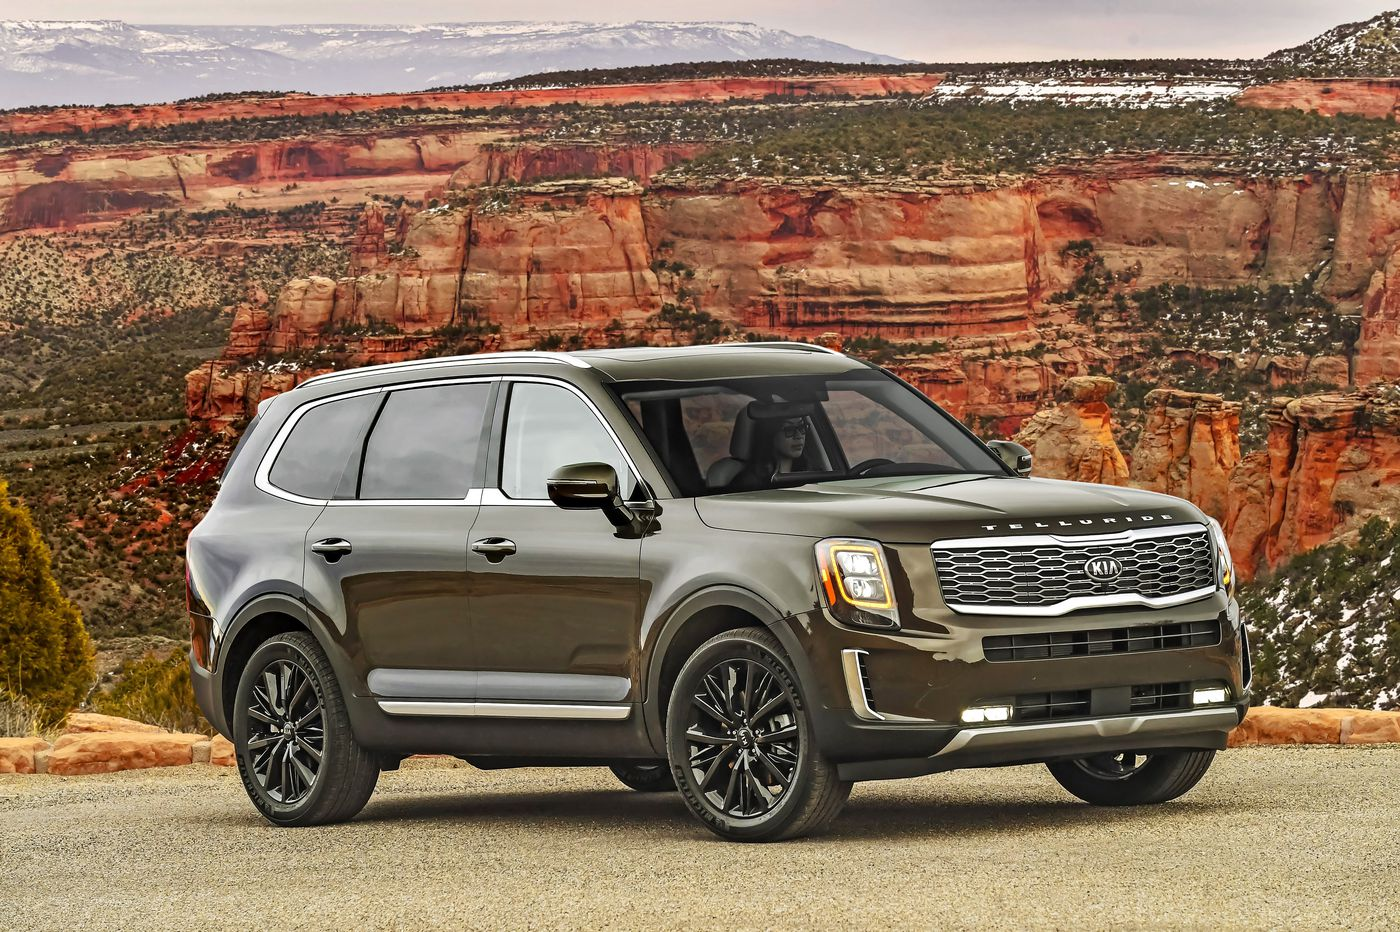 Kia Telluride mixes fun with practicality